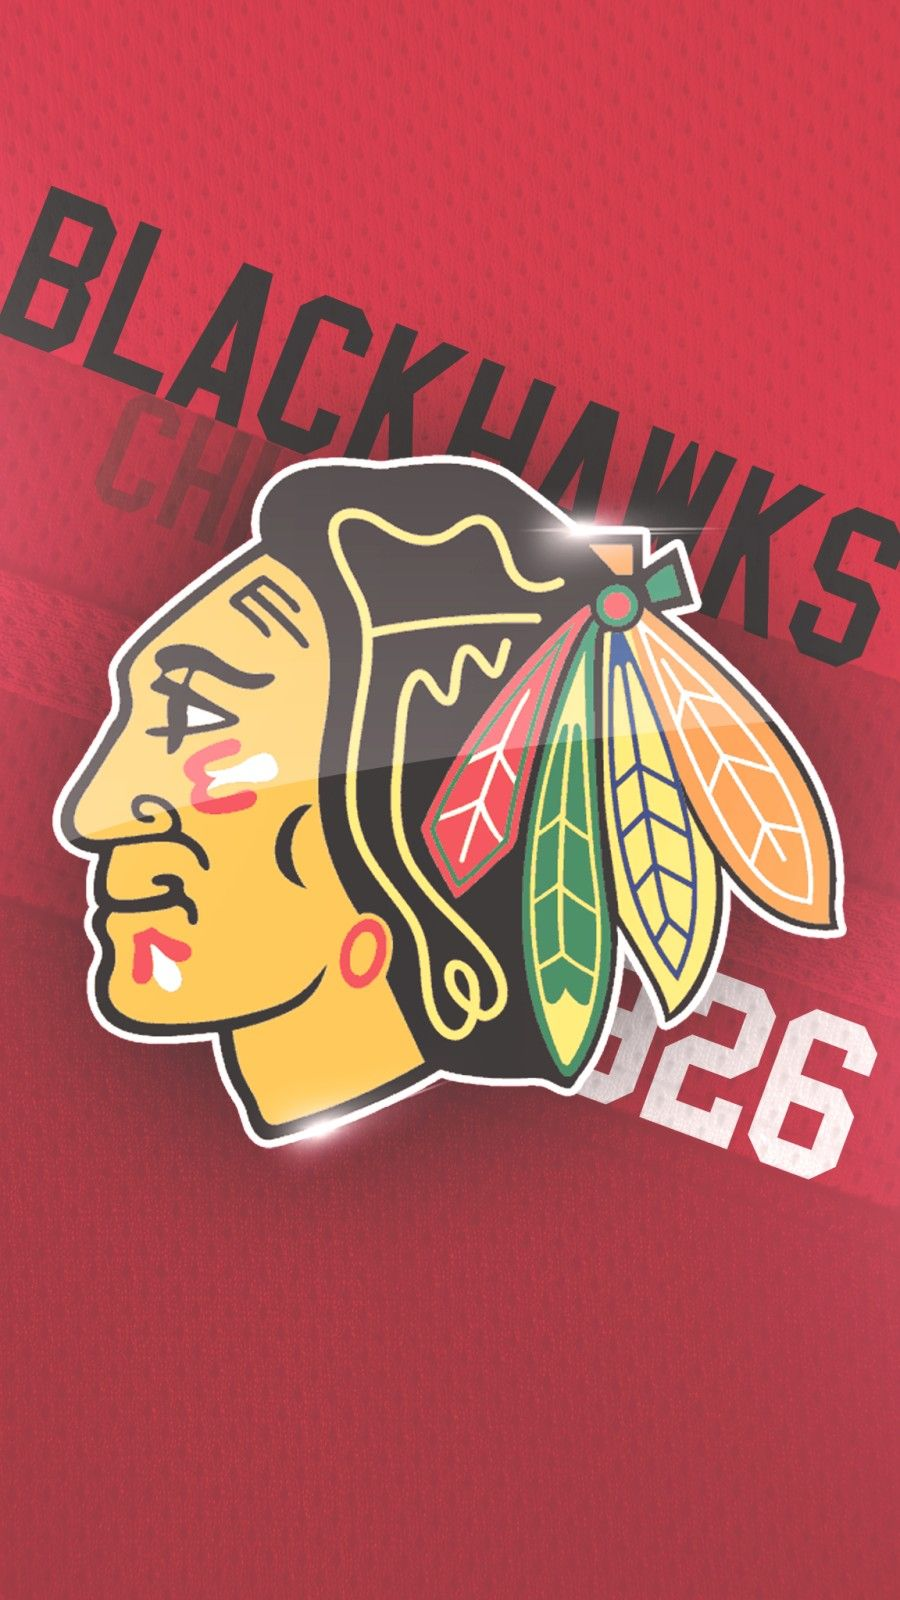 Blackhawks Iphone 7 Wallpaper